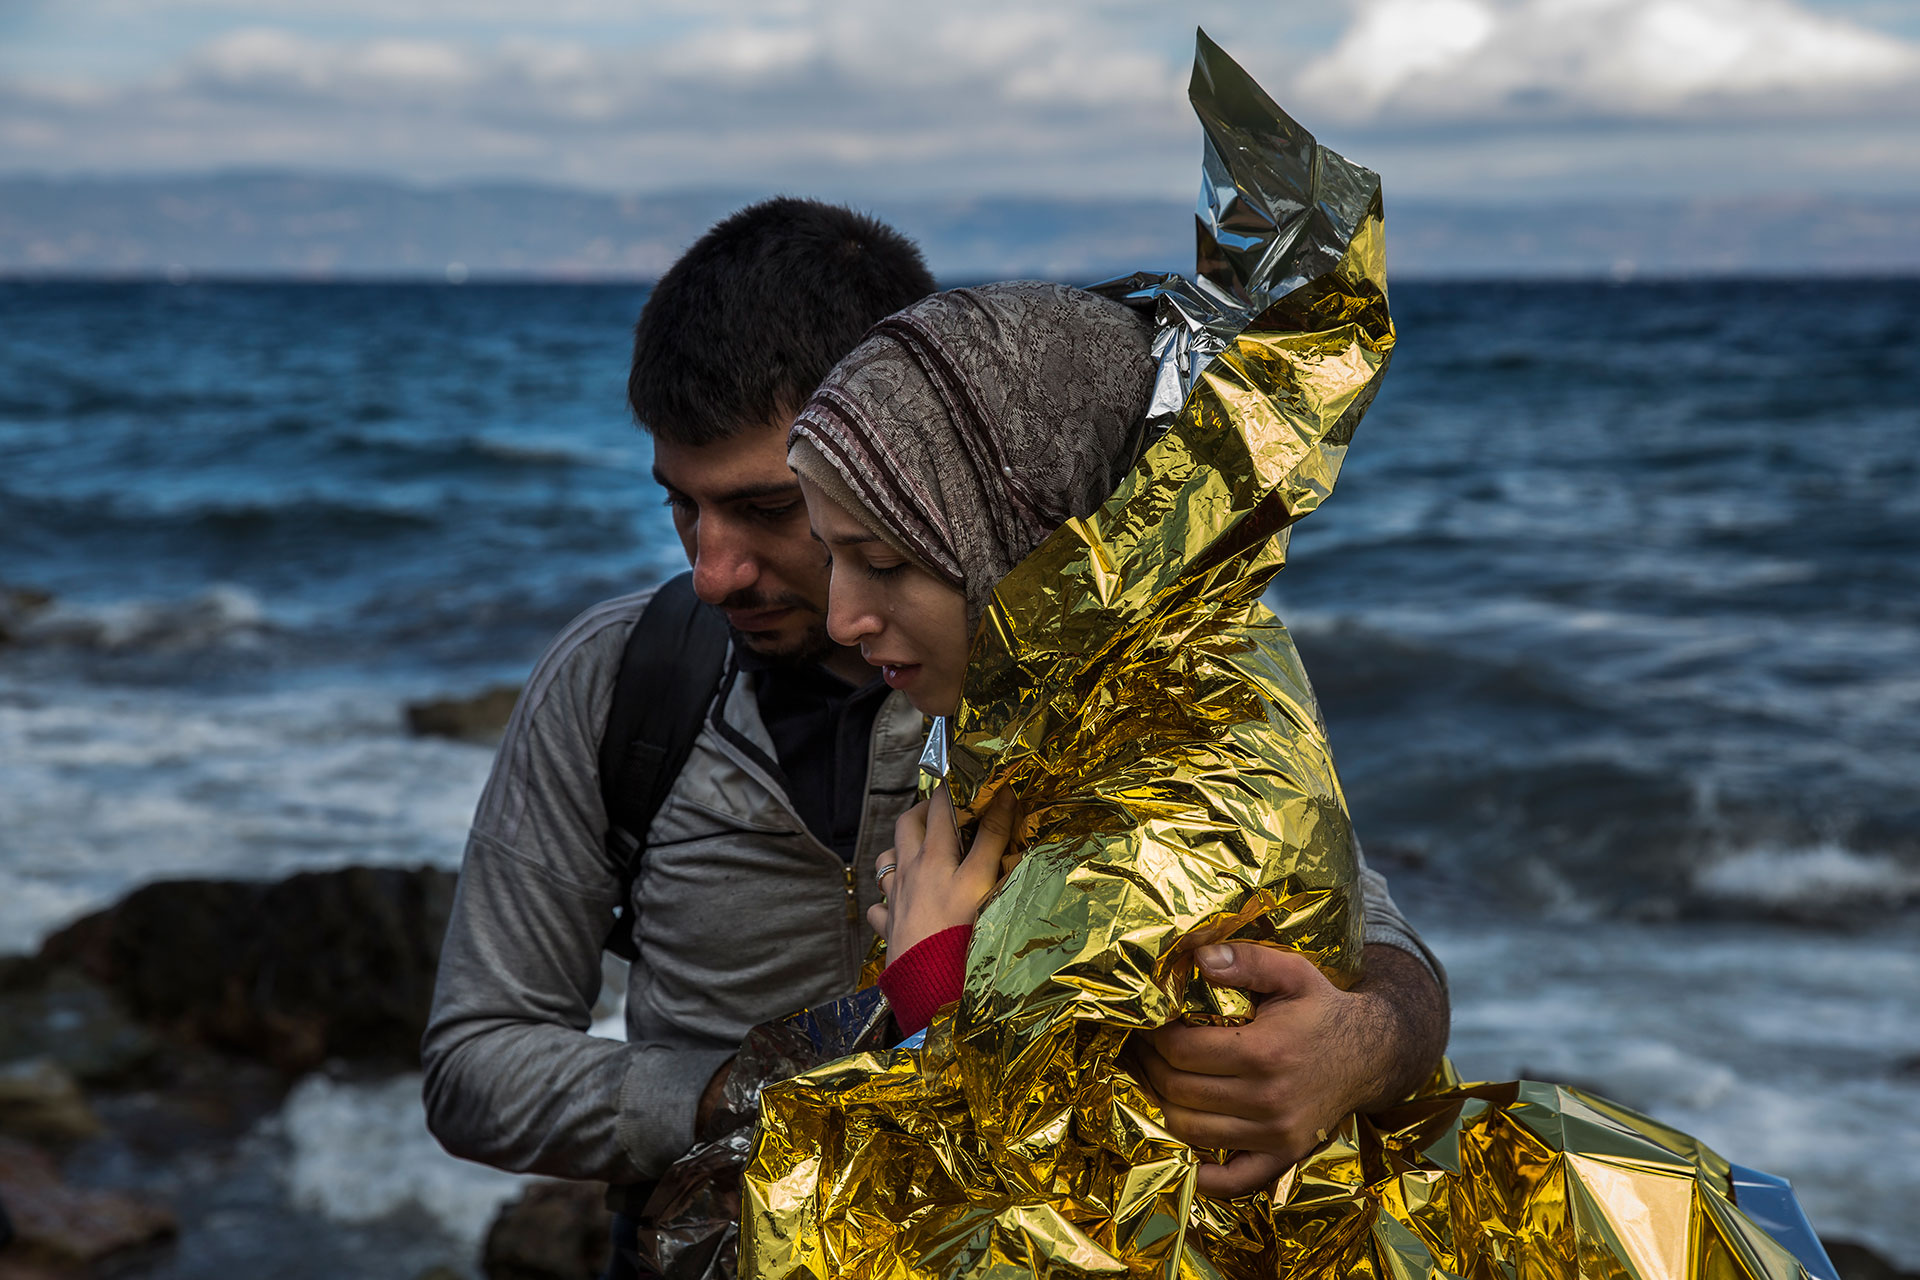 A couple of Syrian youths leave the beach where they've just landed on the Greek island of Lesbos, coming from the coasts of Turkey